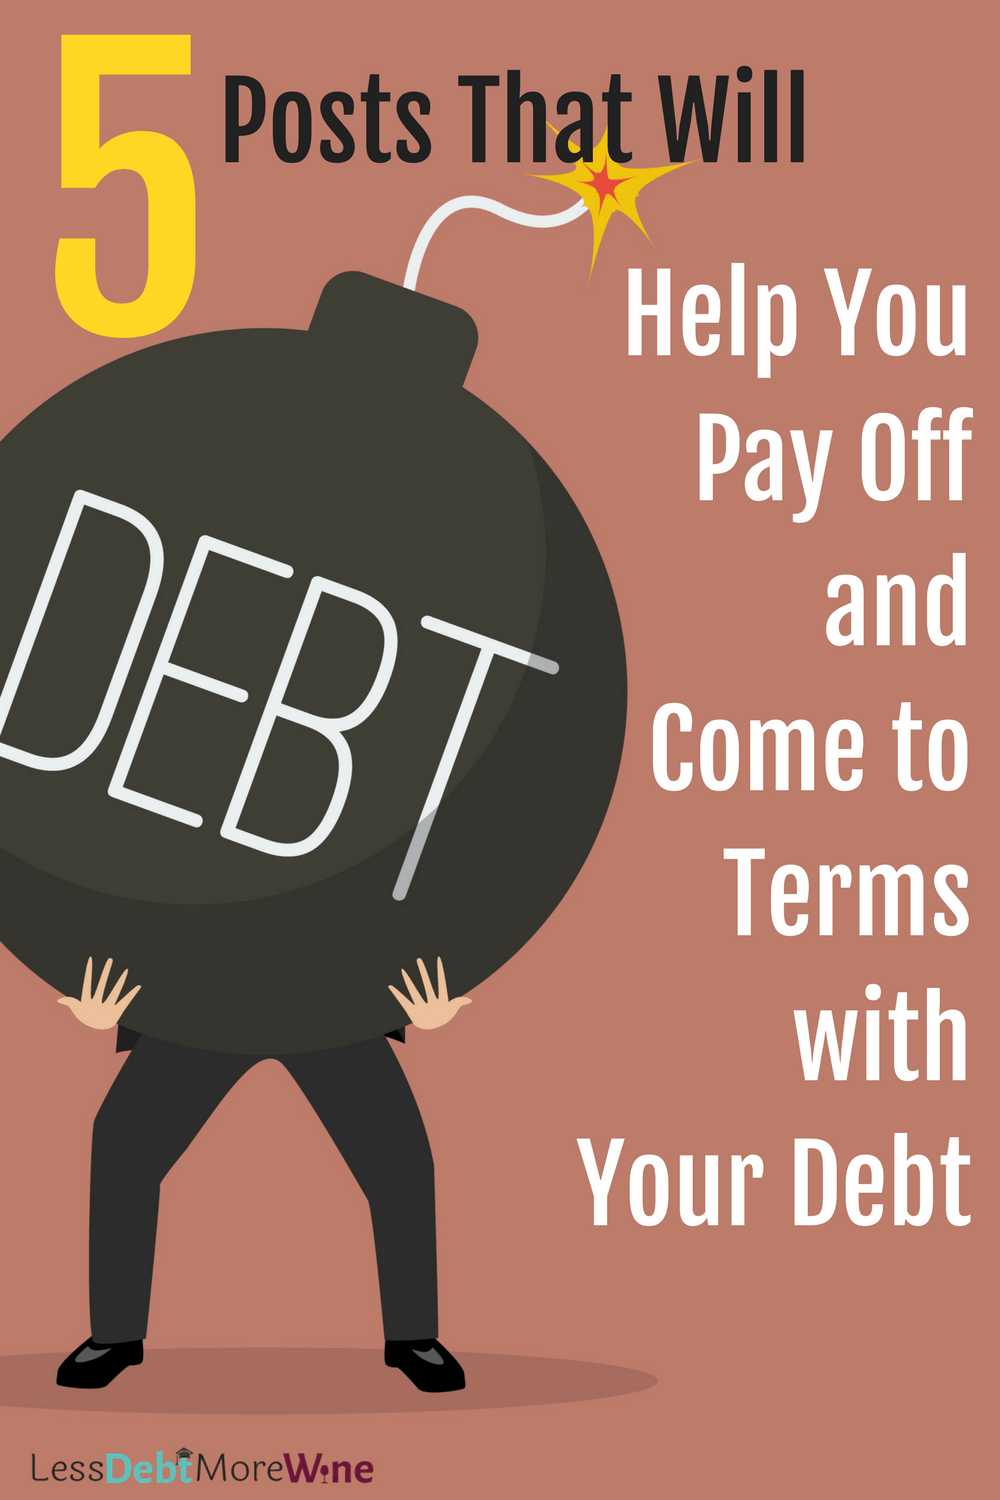 pay off your debt | pay off debt | debt repayment | student debt | student loans | credit card debt | how to pay off debt | debt payoff